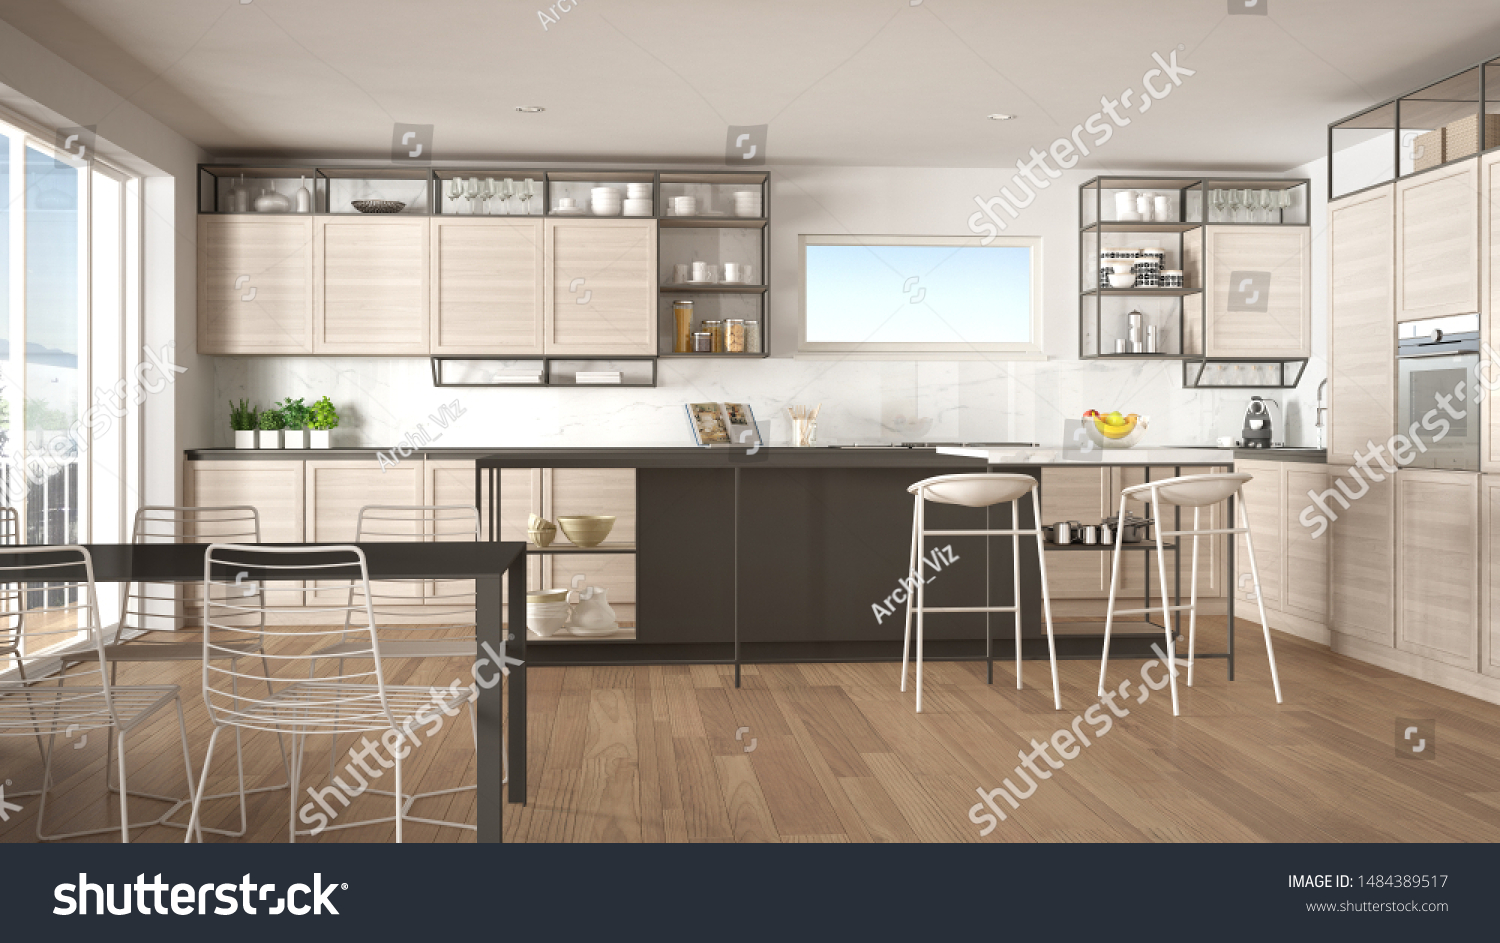 Penthouse Minimalist Kitchen Interior Design Lounge Stock Illustration 1484389517